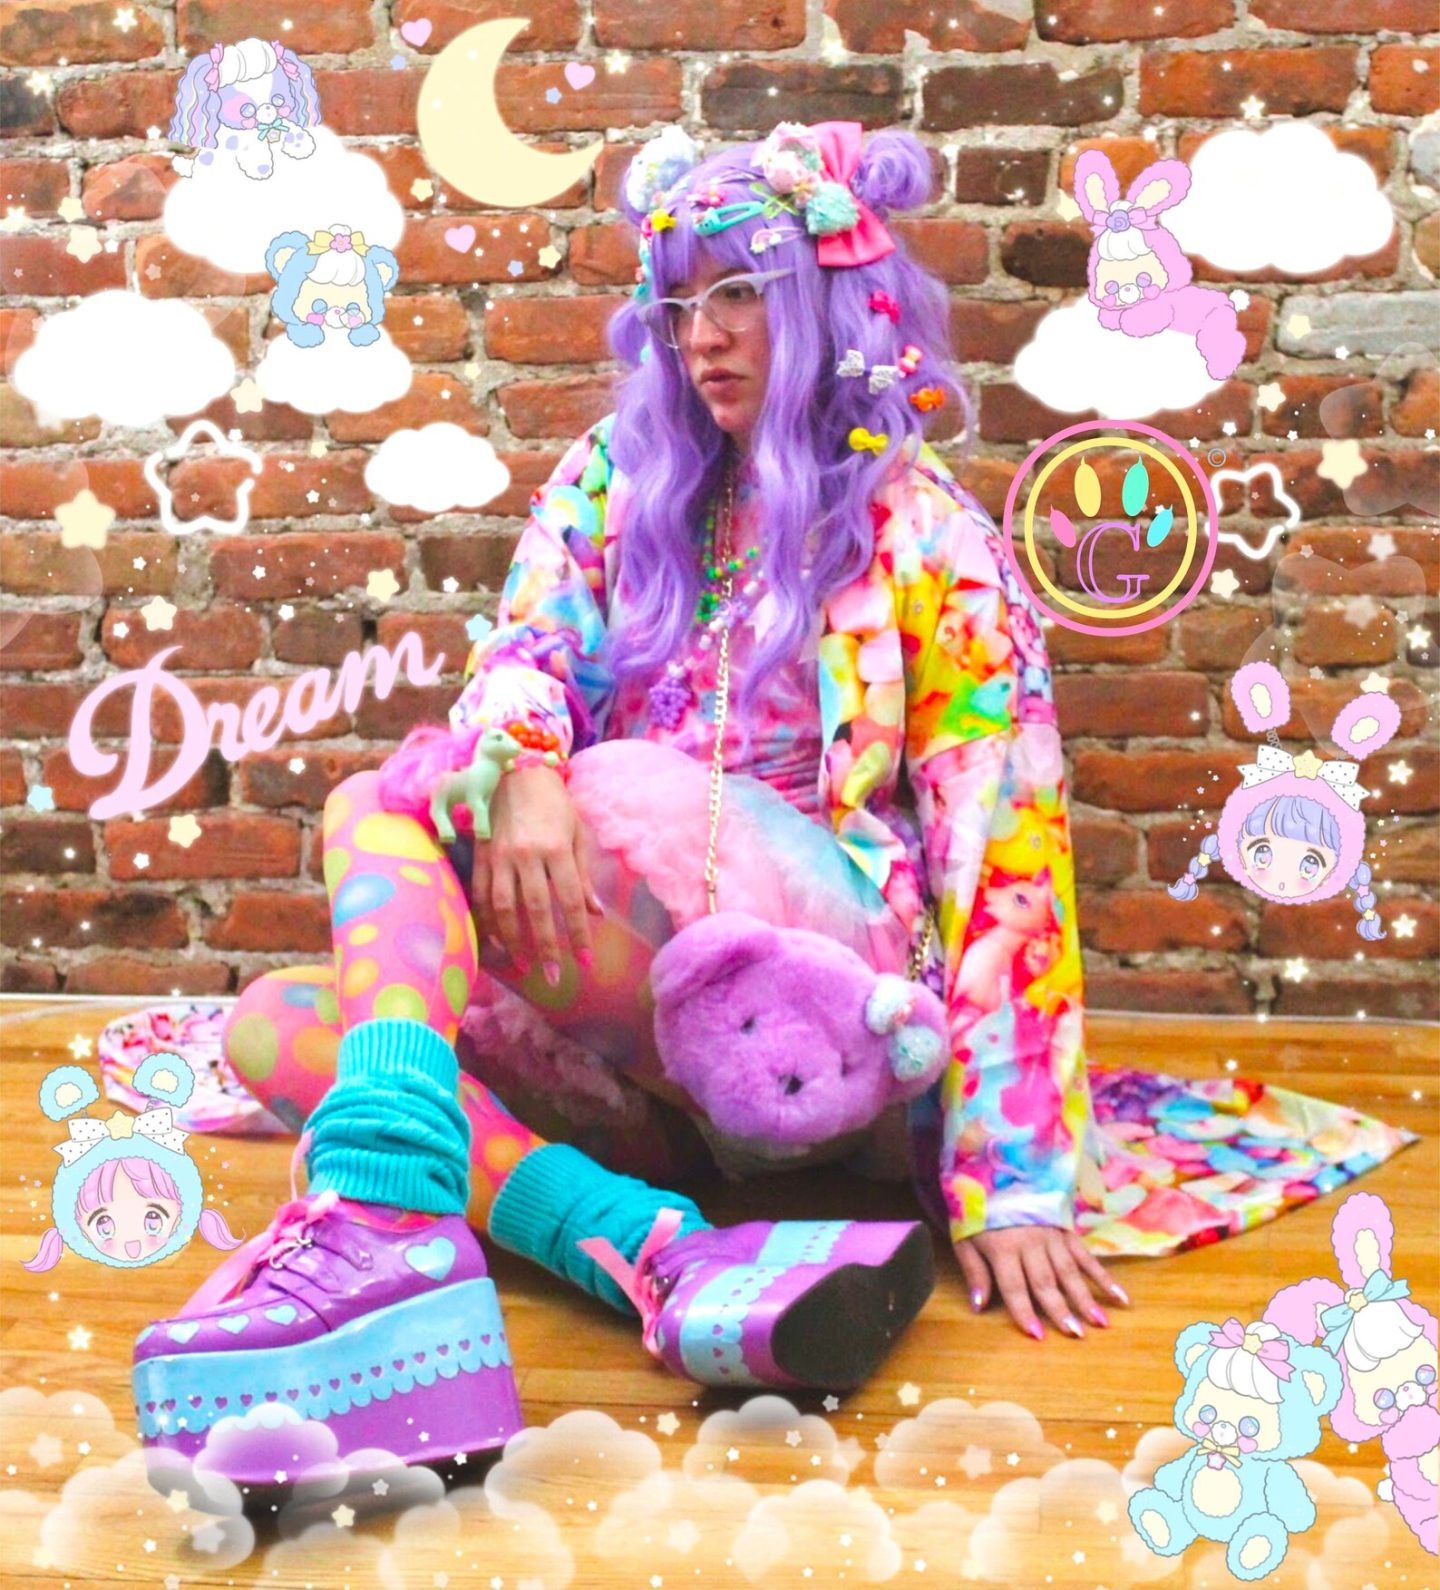 Cute pastel kidcore outfit